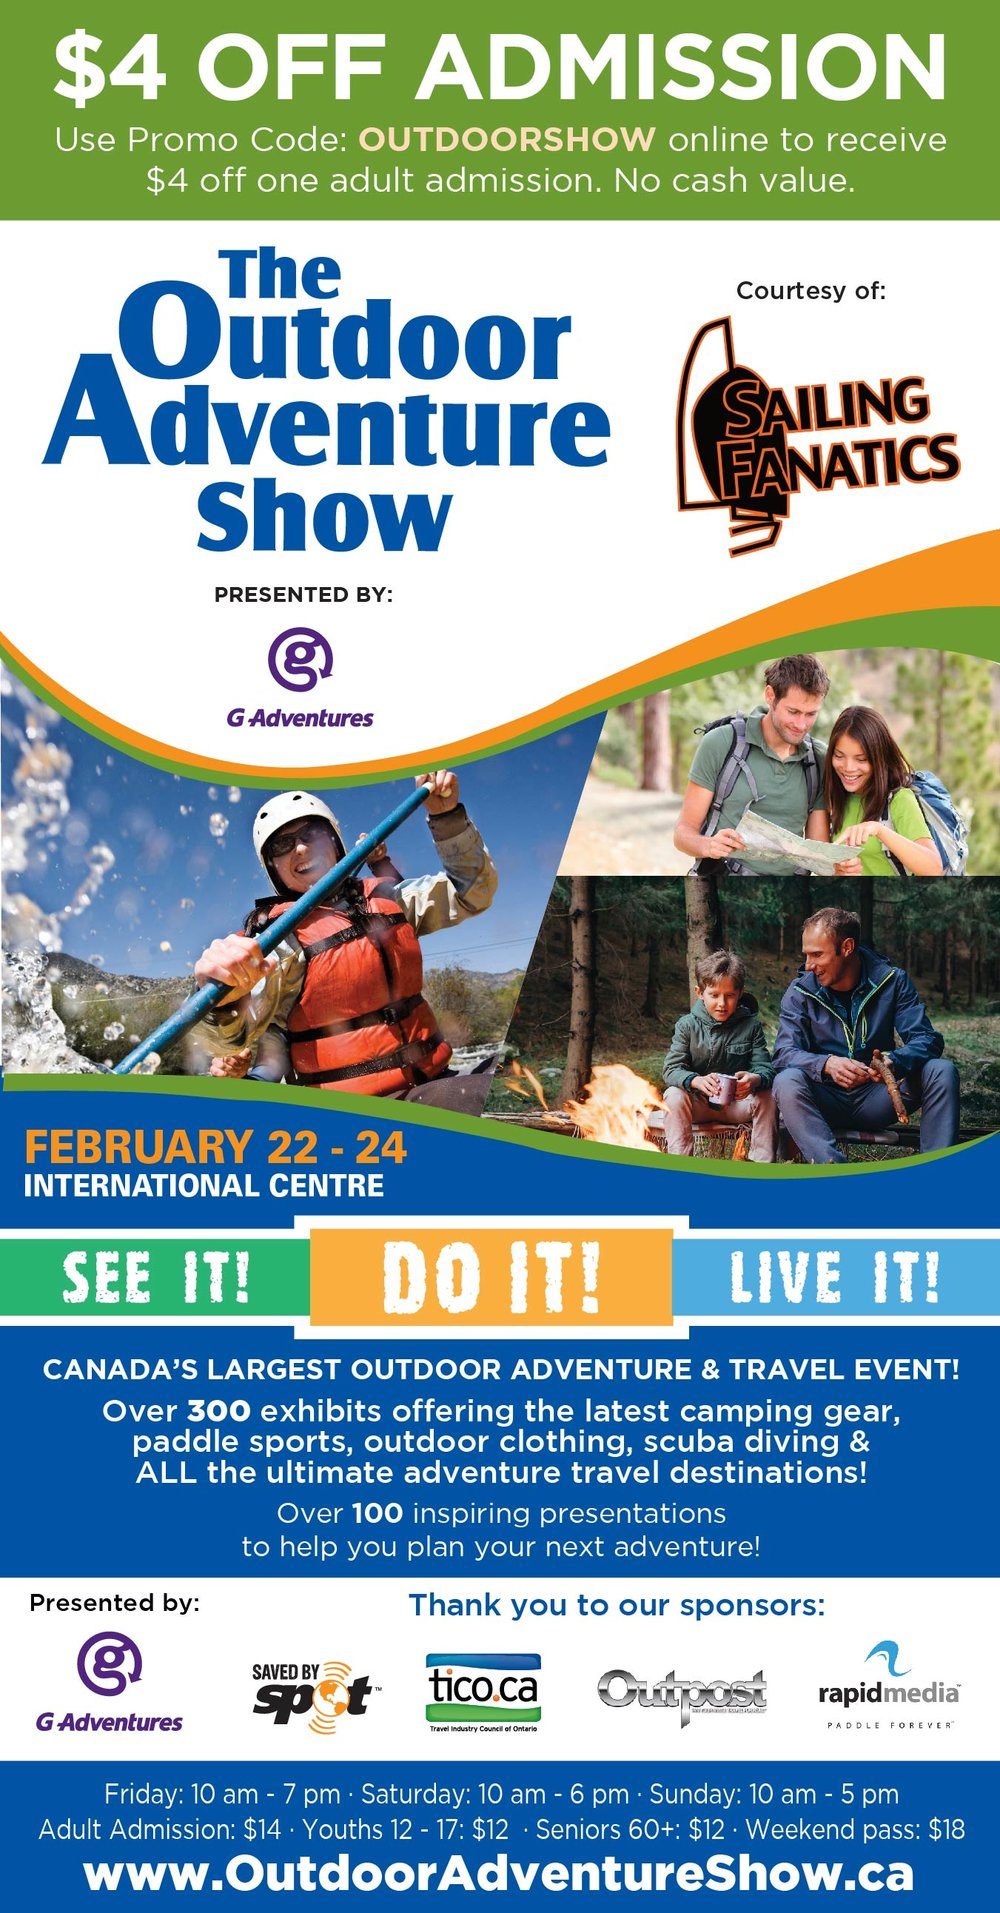 Talk to us at Sailing Fanatics at the Toronto Outdoor Adventure Show